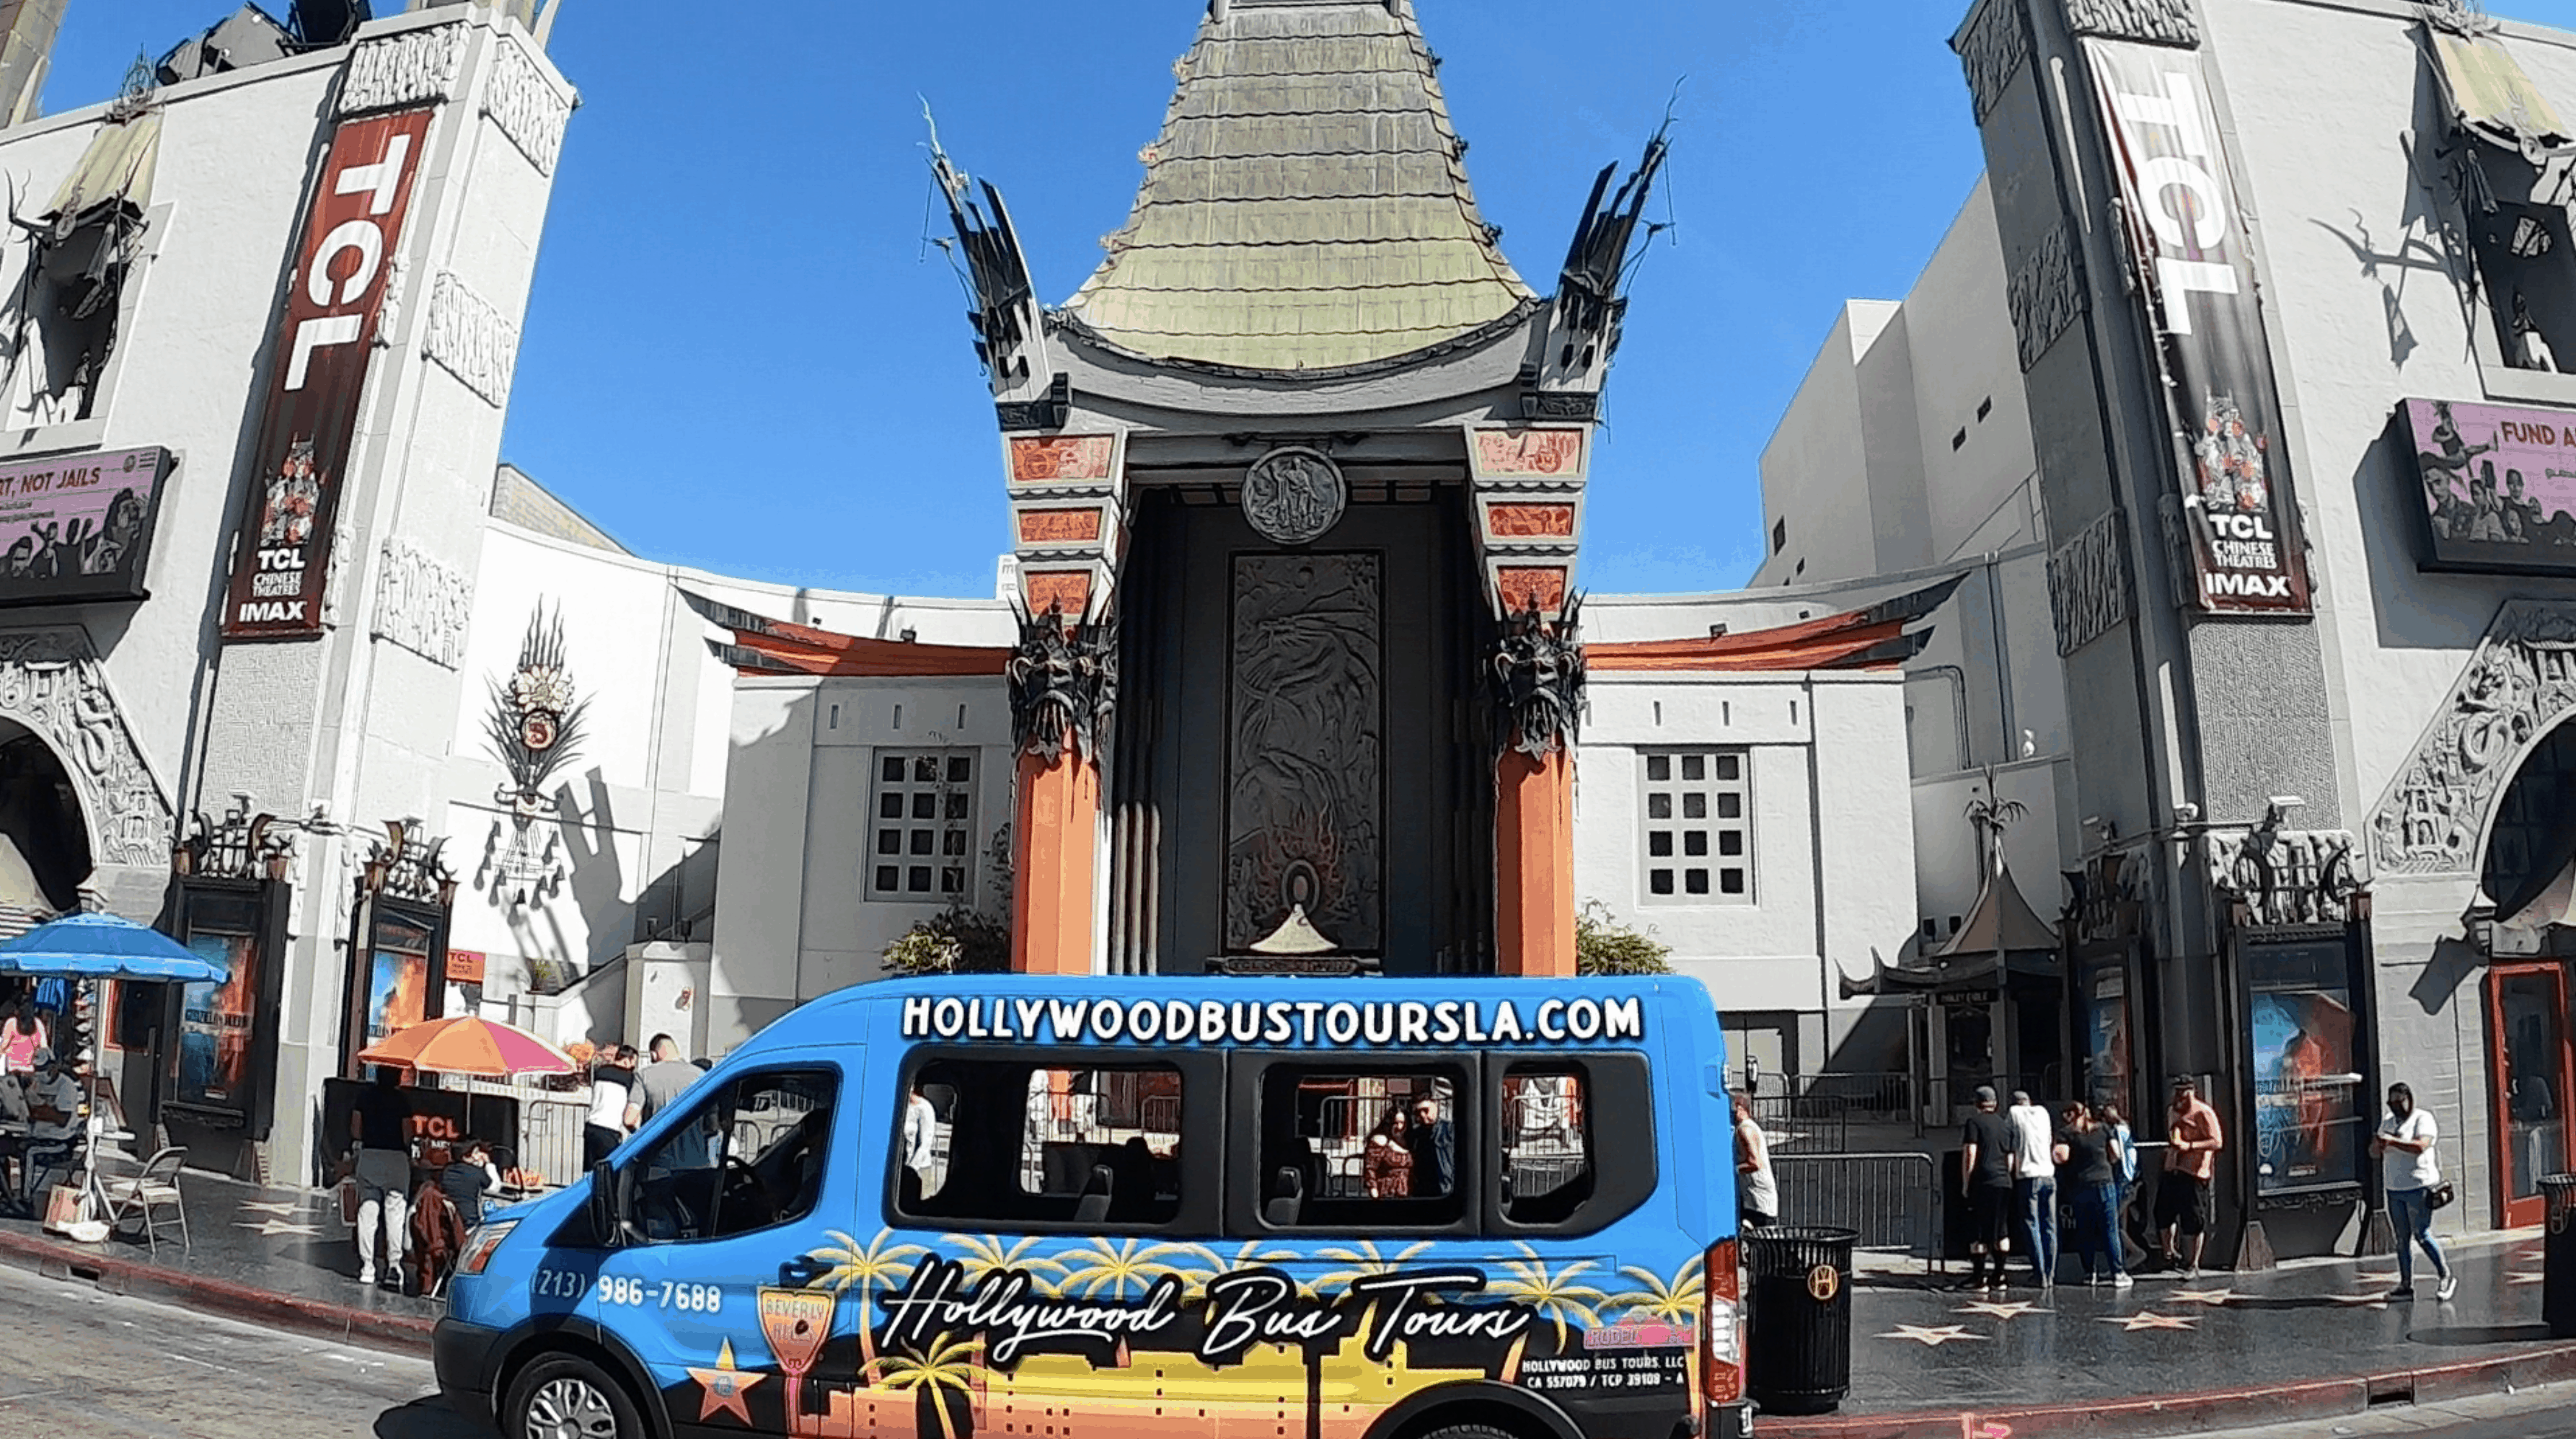 Hollywood Bus Tours - Chinese Theater